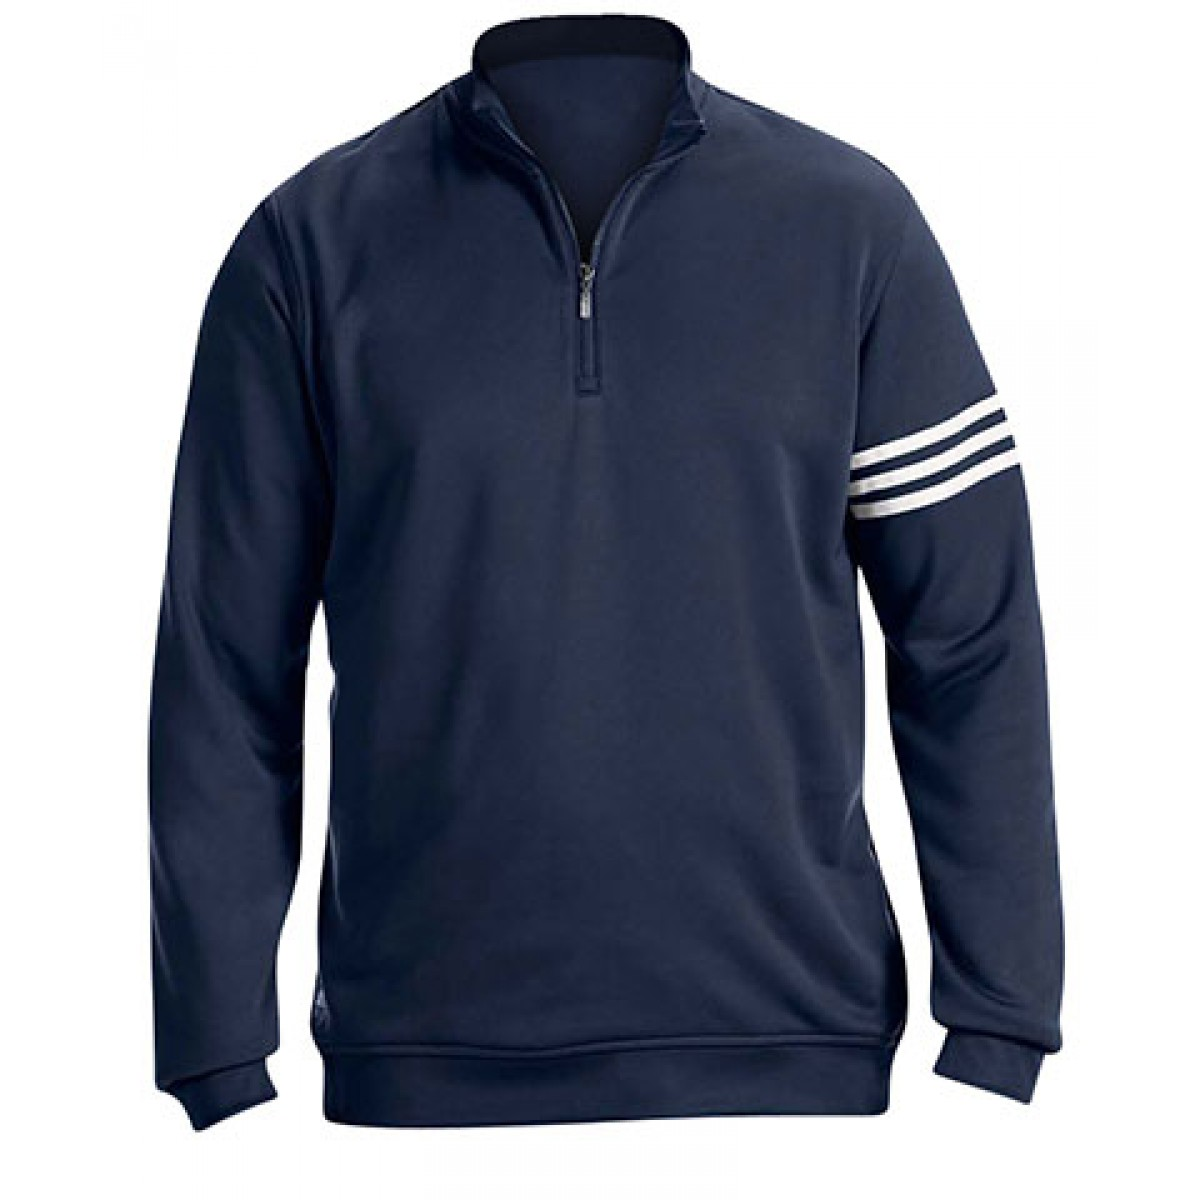 Adidas Men's 3-Stripes Pullover-Navy-3XL